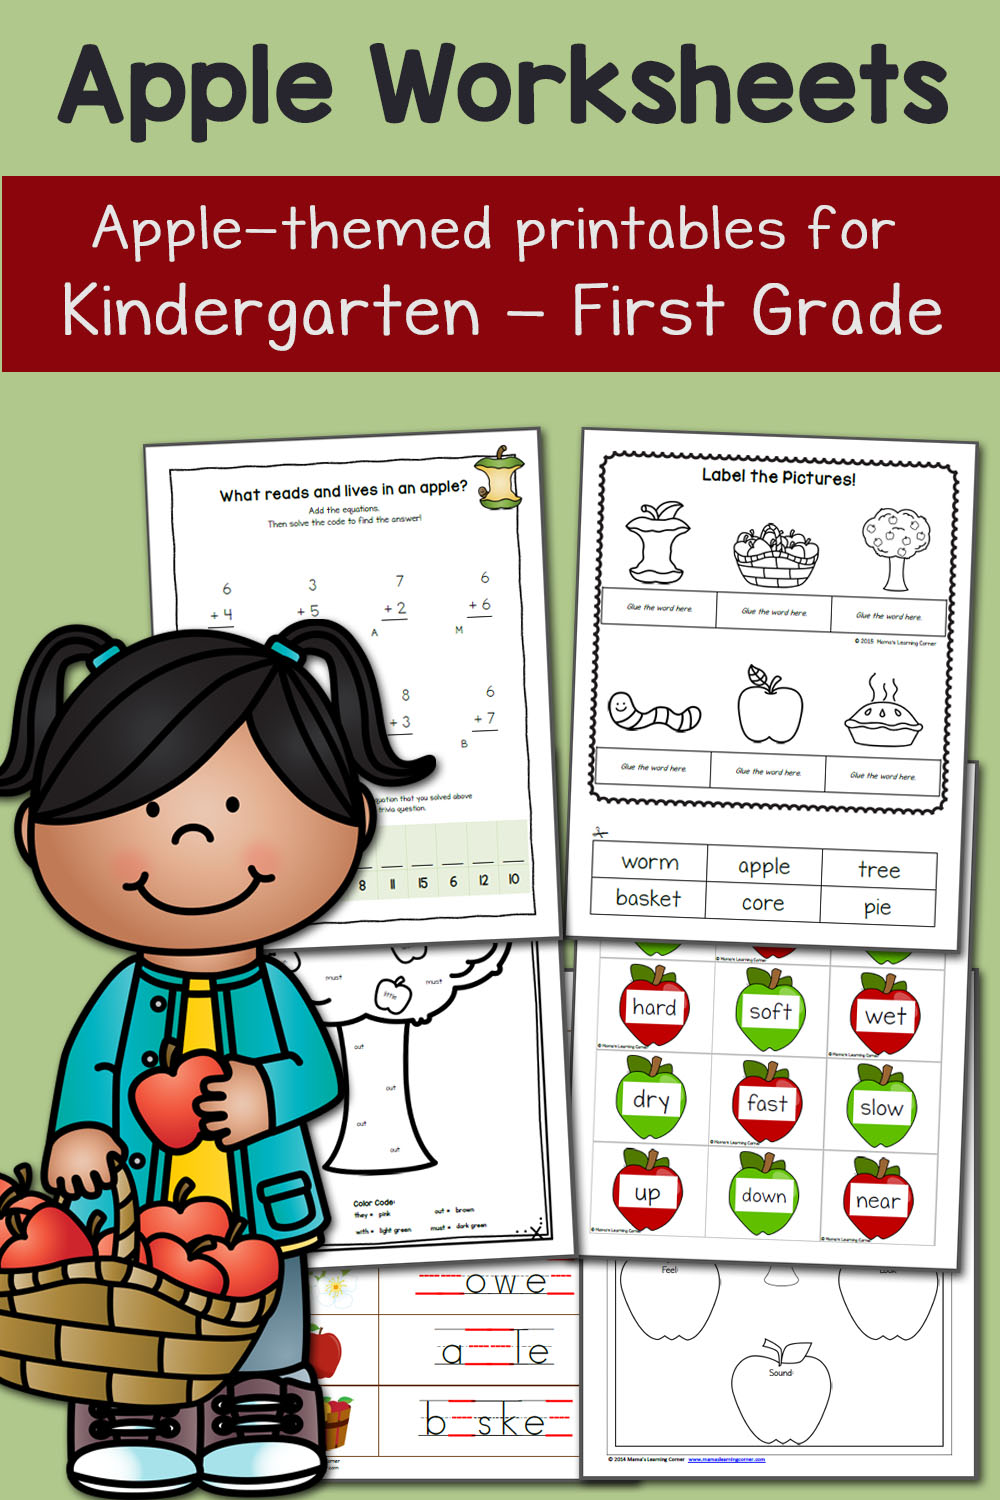 hight resolution of Apple Worksheets for Kindergarten and First Grade - Mamas Learning Corner